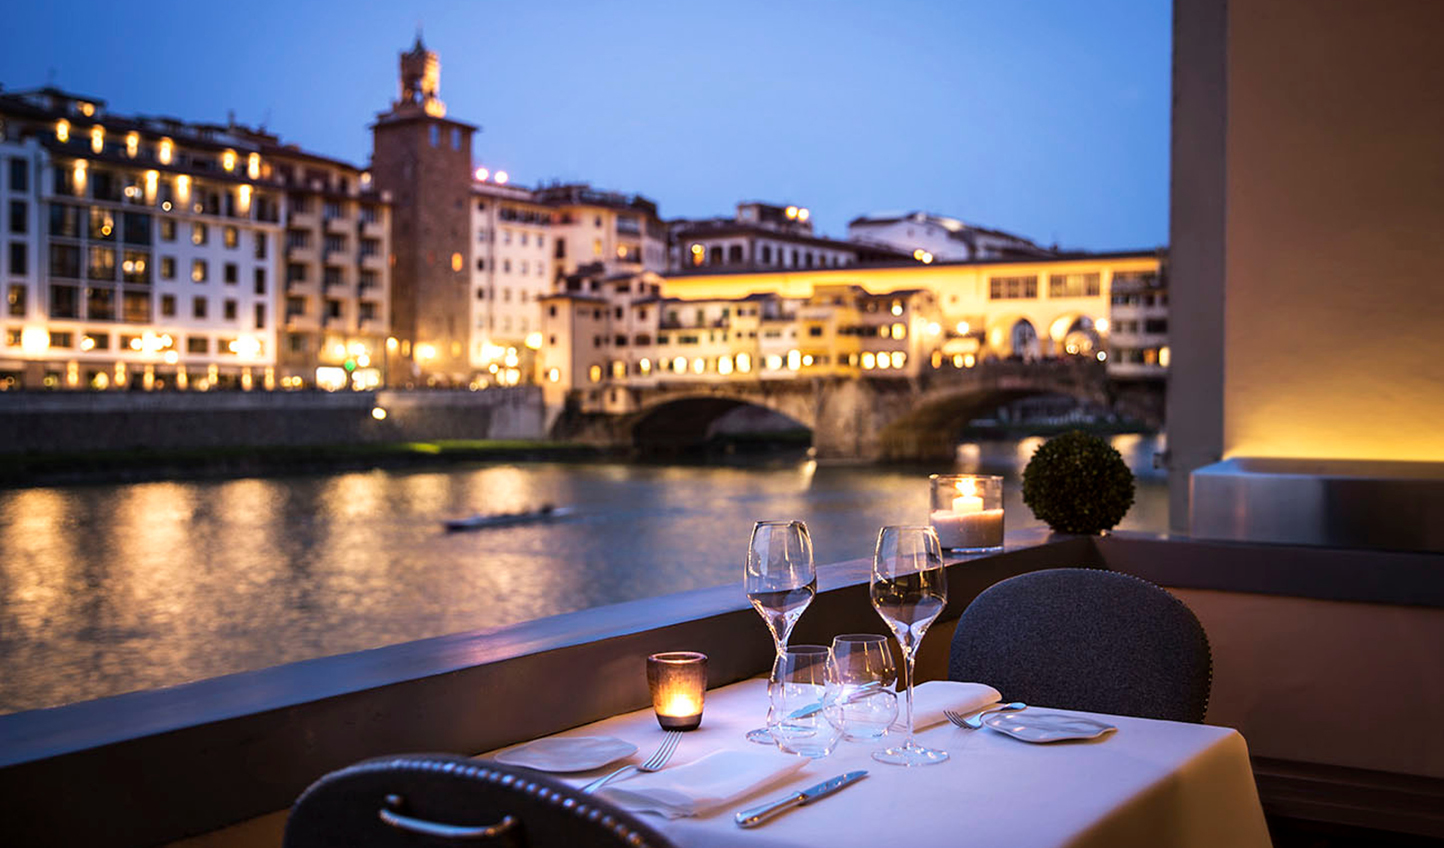 Dine on the banks of the Arno River